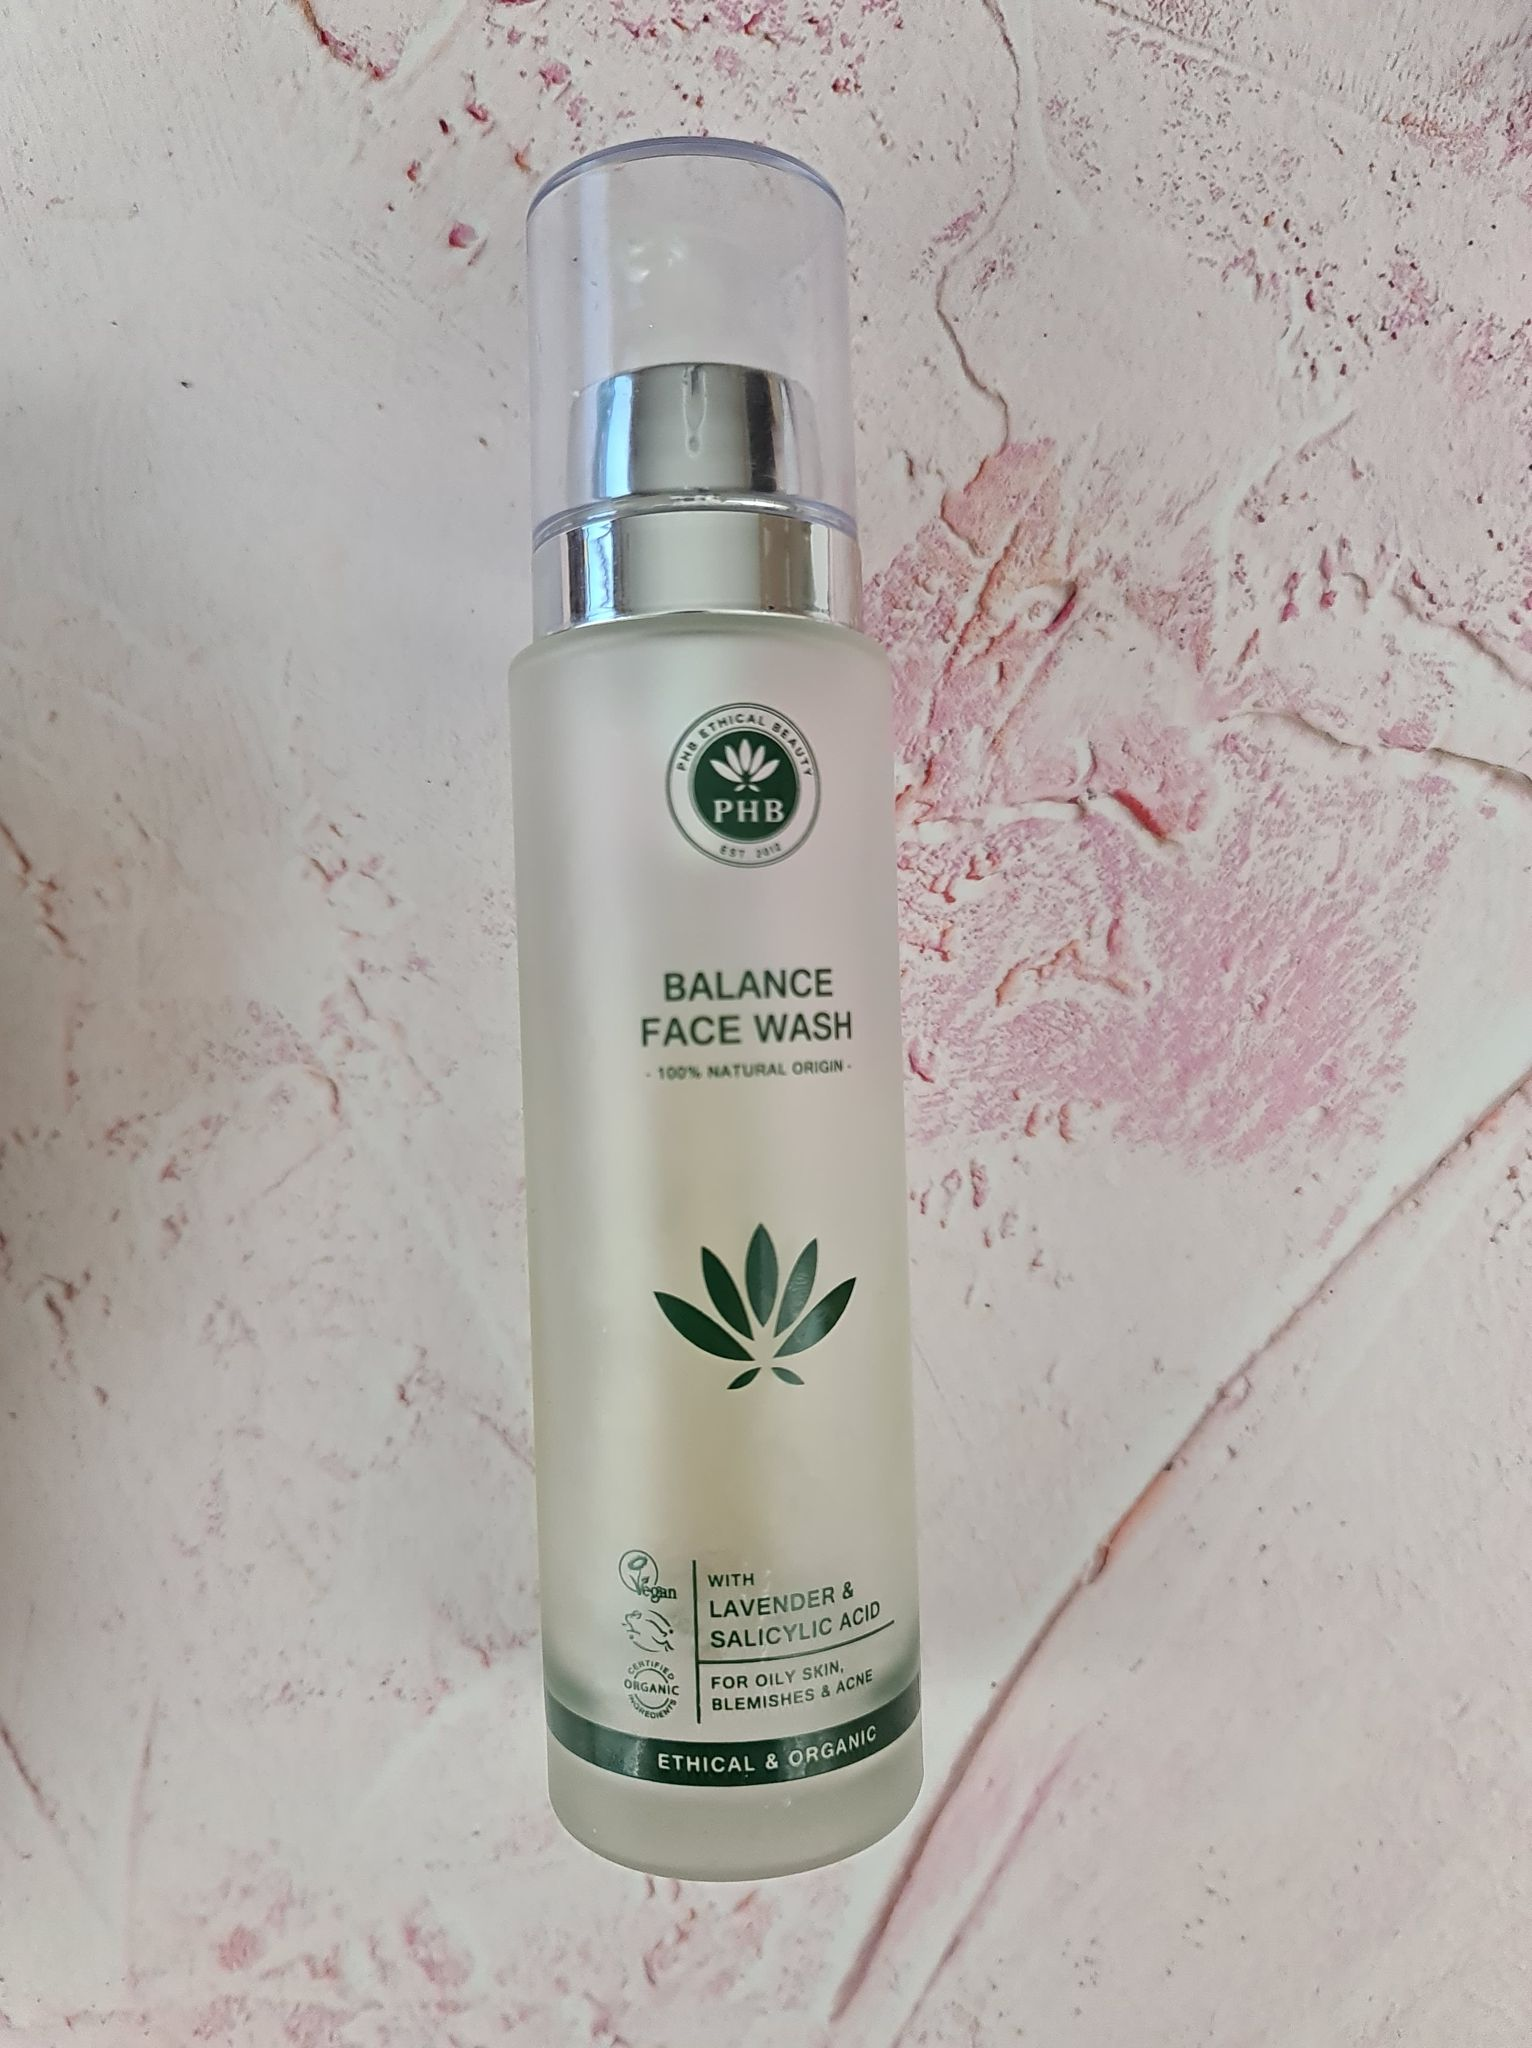 PHB Ethical Beauty - Balance Face Wash 100ml review